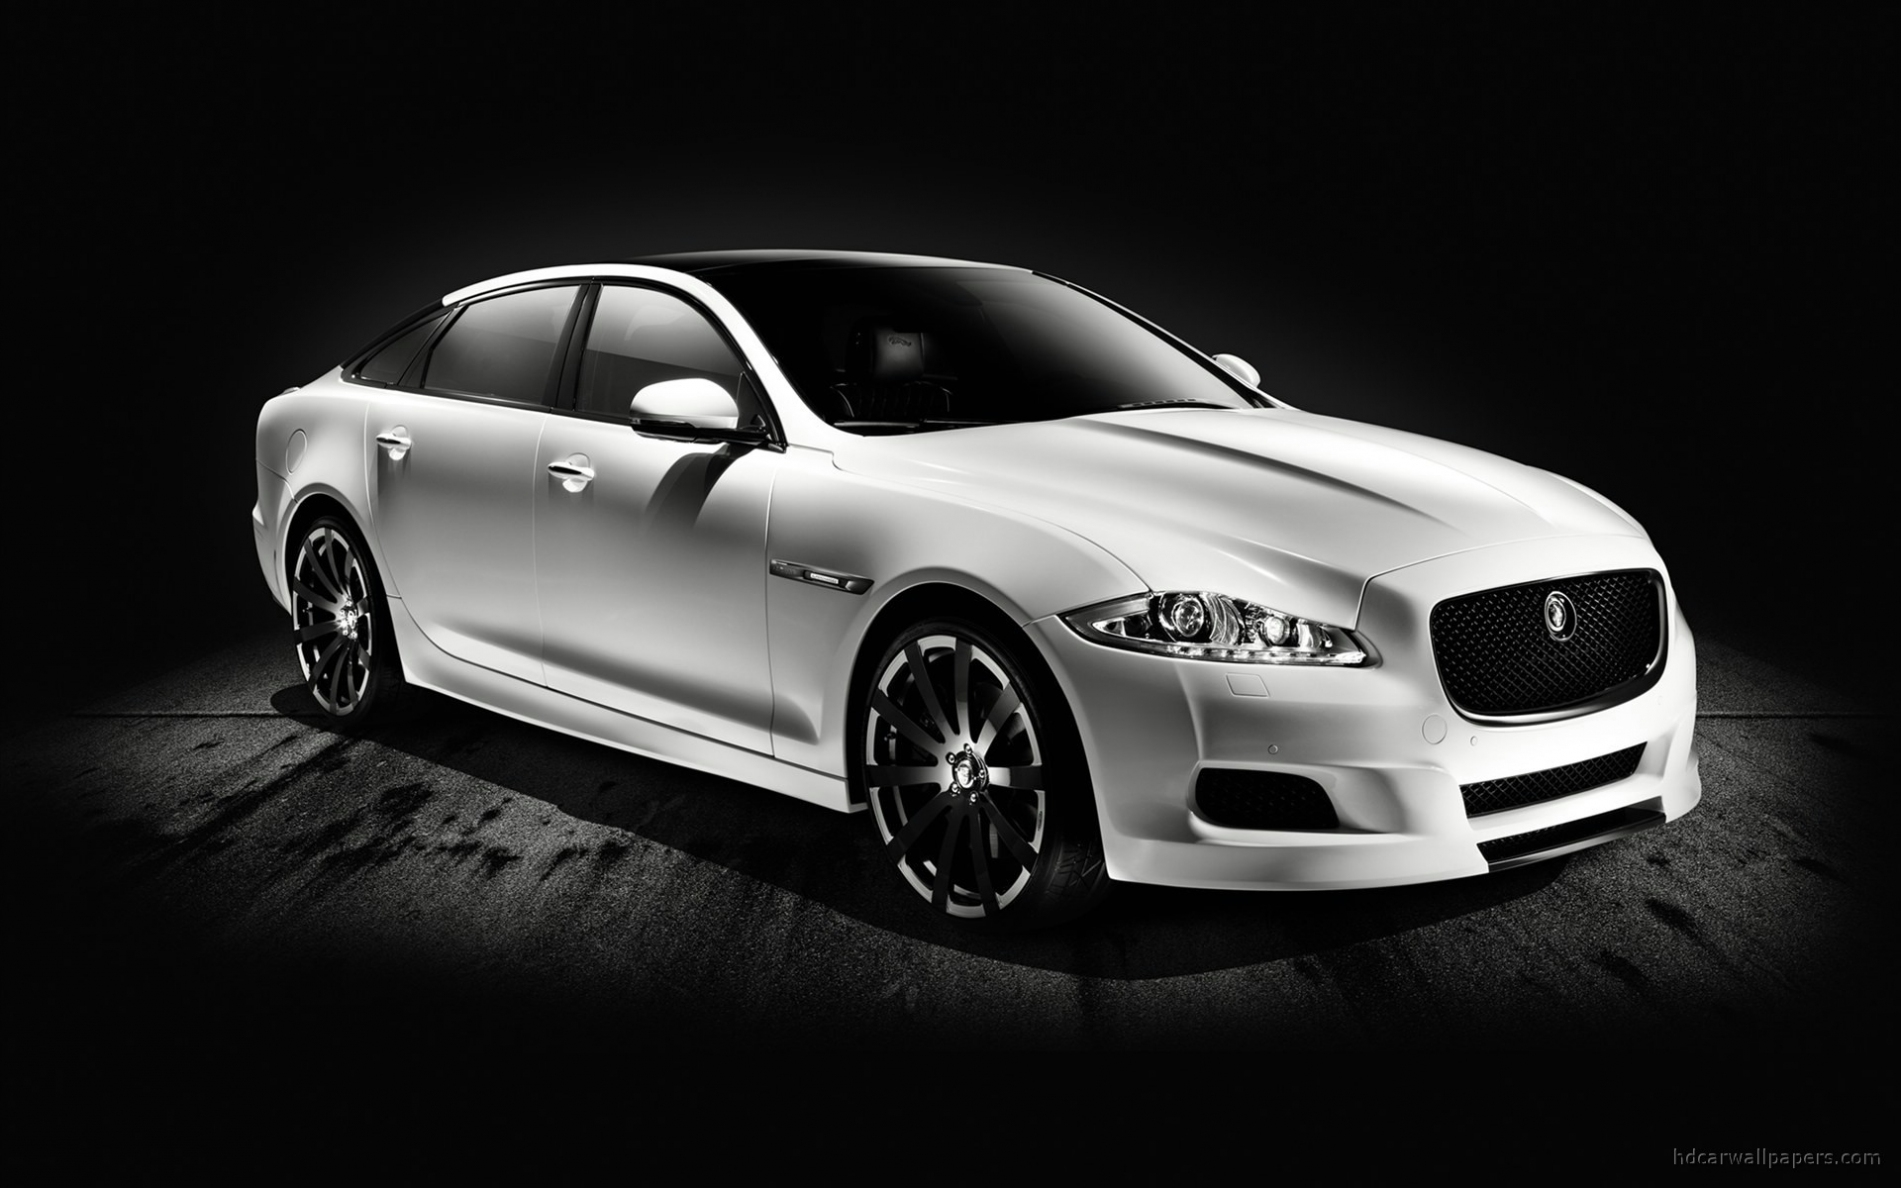 White Jaguar Car Wallpapers Full Hd Is Cool Wallpapers